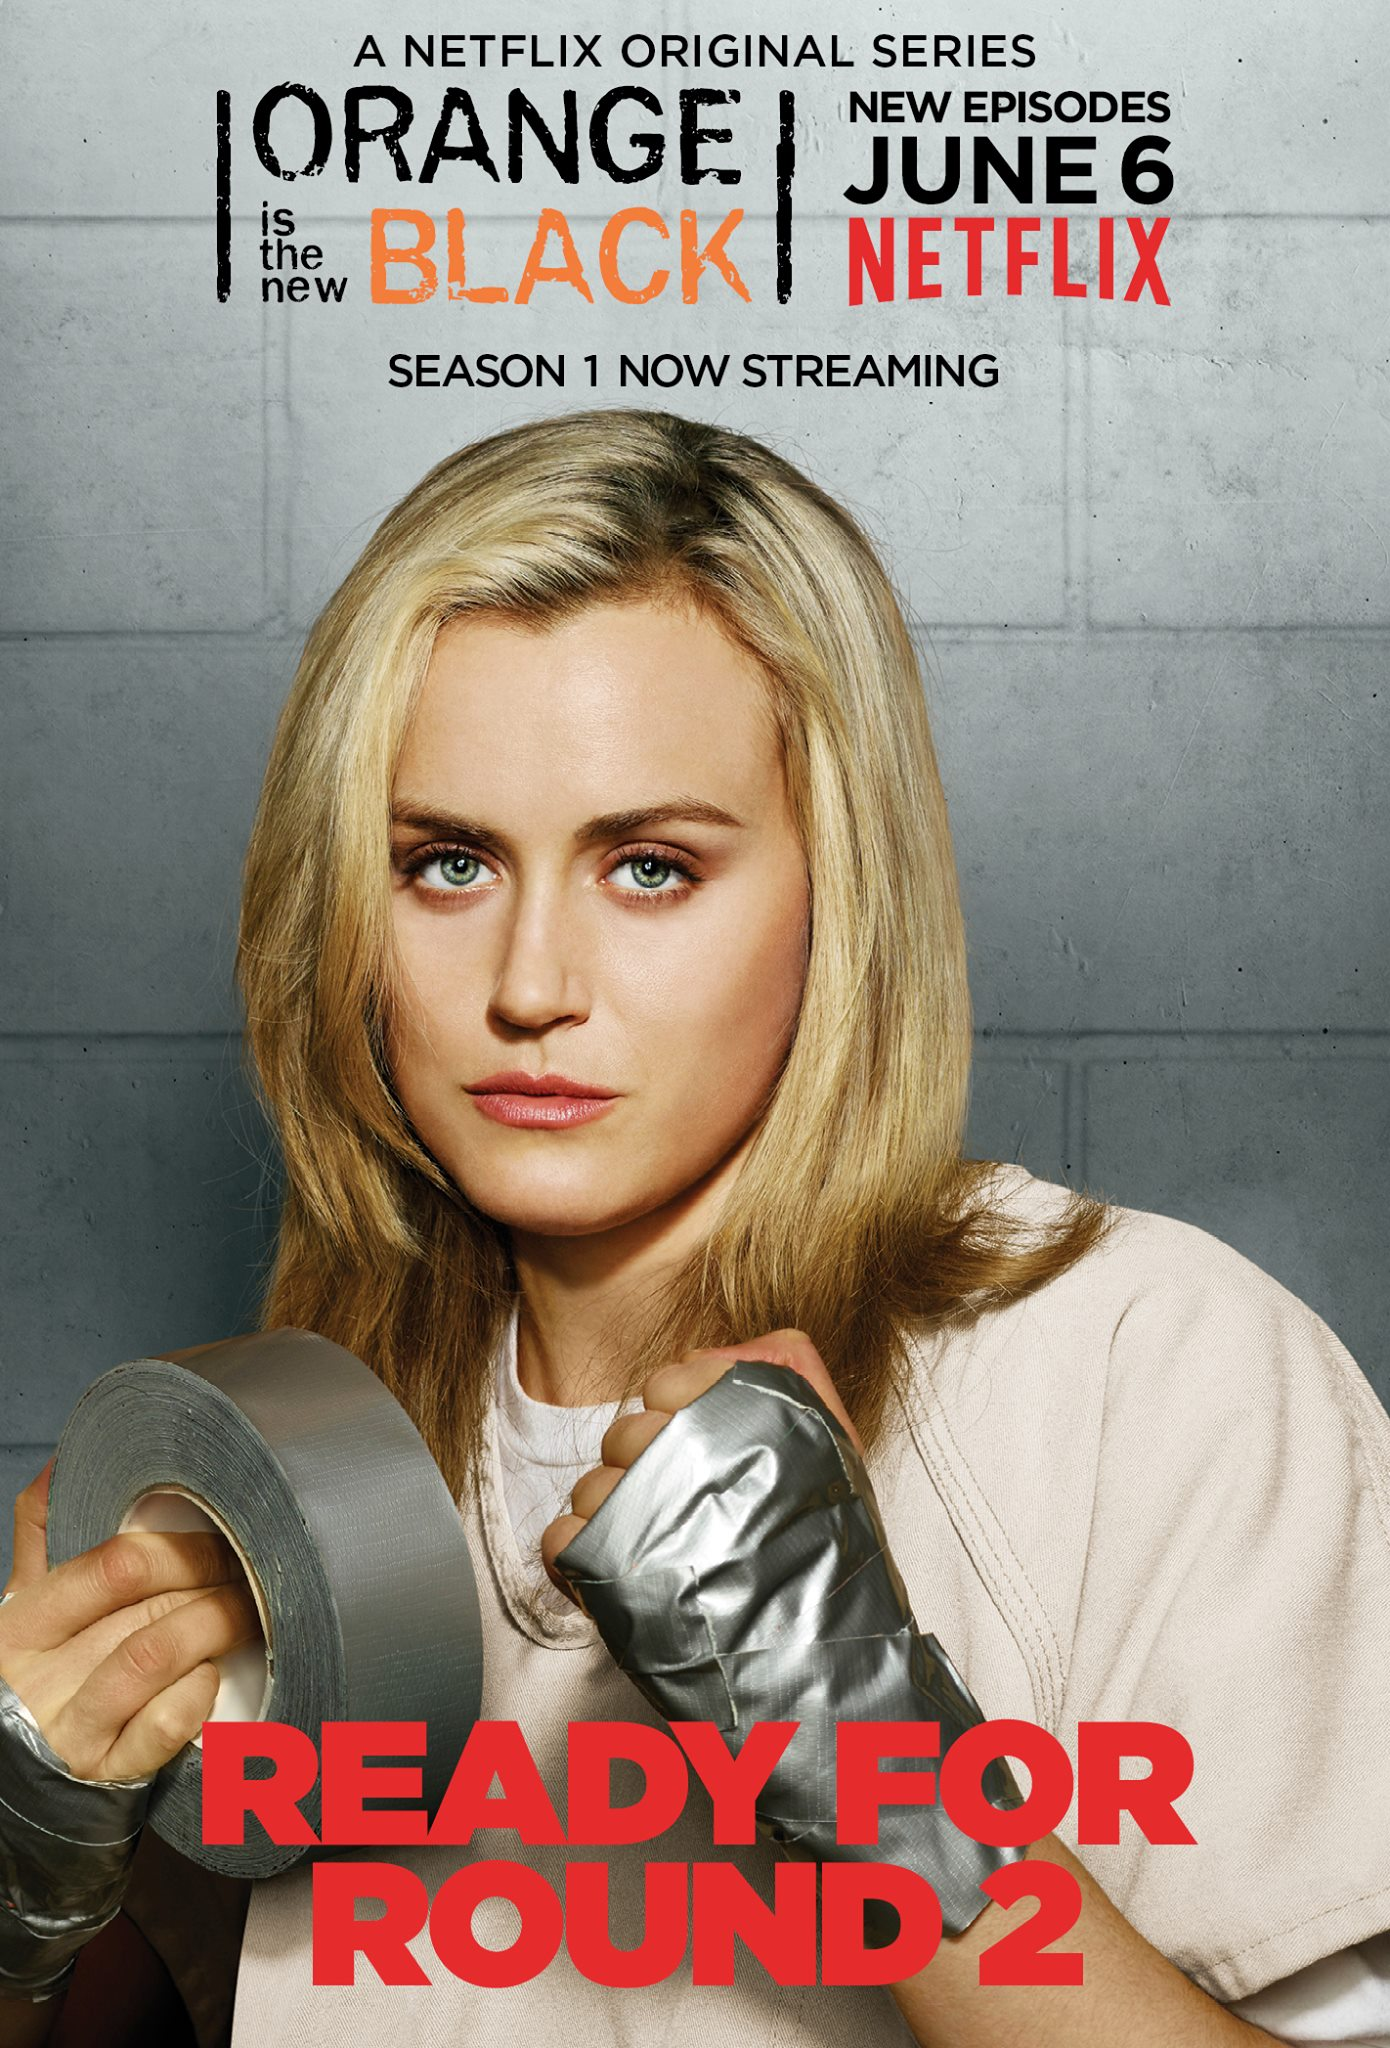 EXCLUSIVE OITNB Pennsatucky animated character poster plus Piper